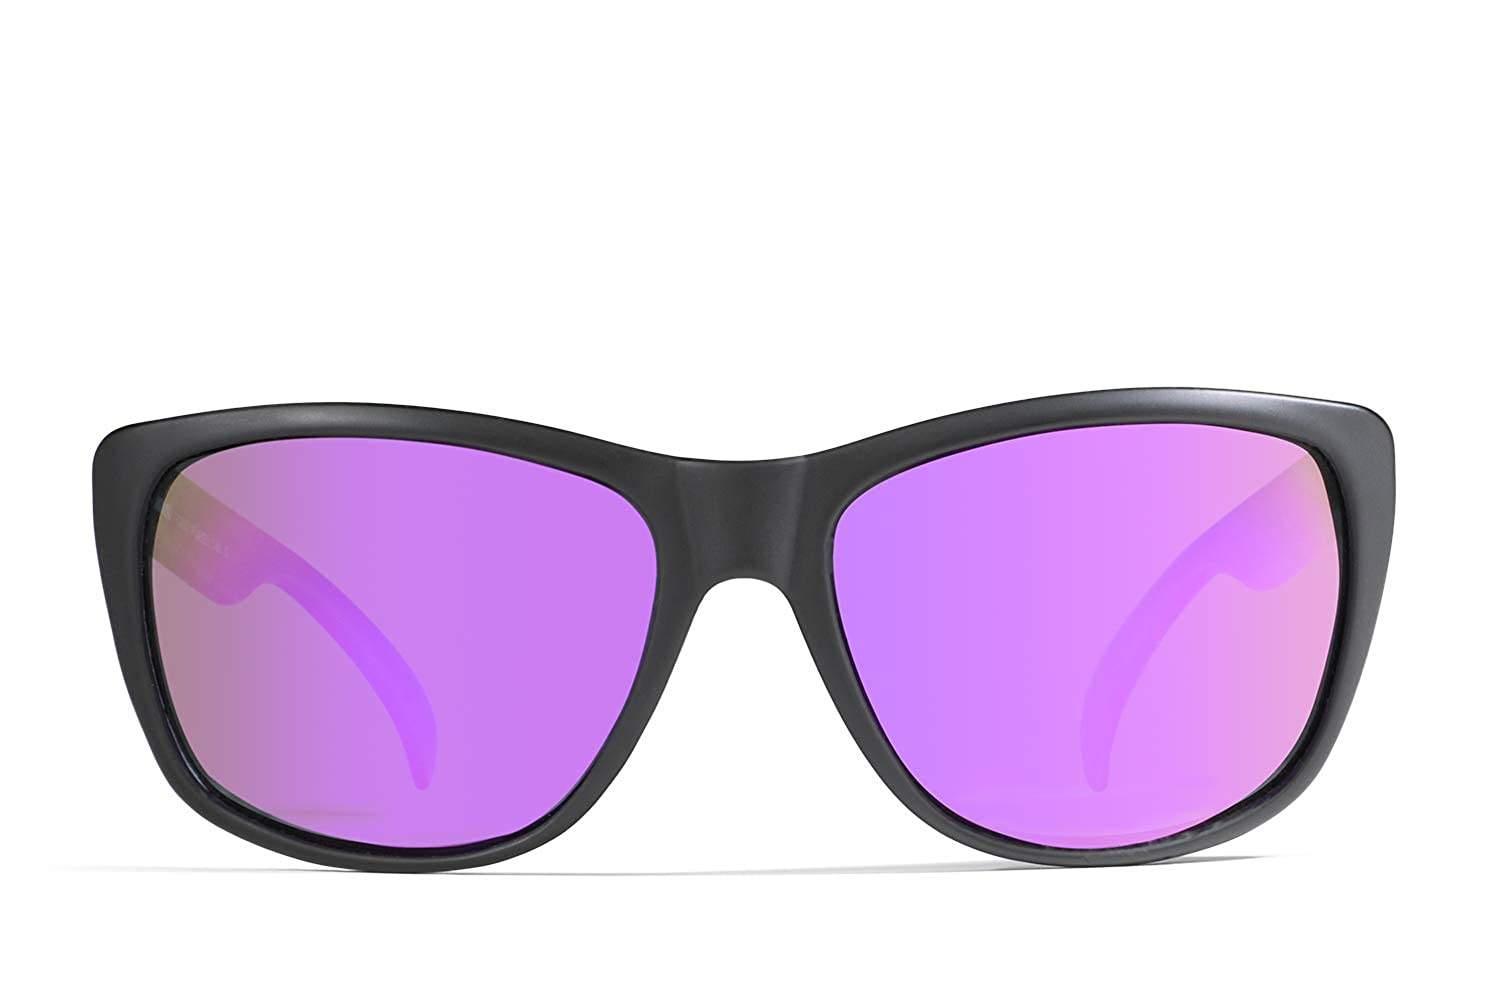 100/% UV Protection Rheos Sapelos Floating Polarized Sunglasses Ideal for Fishing and Boating